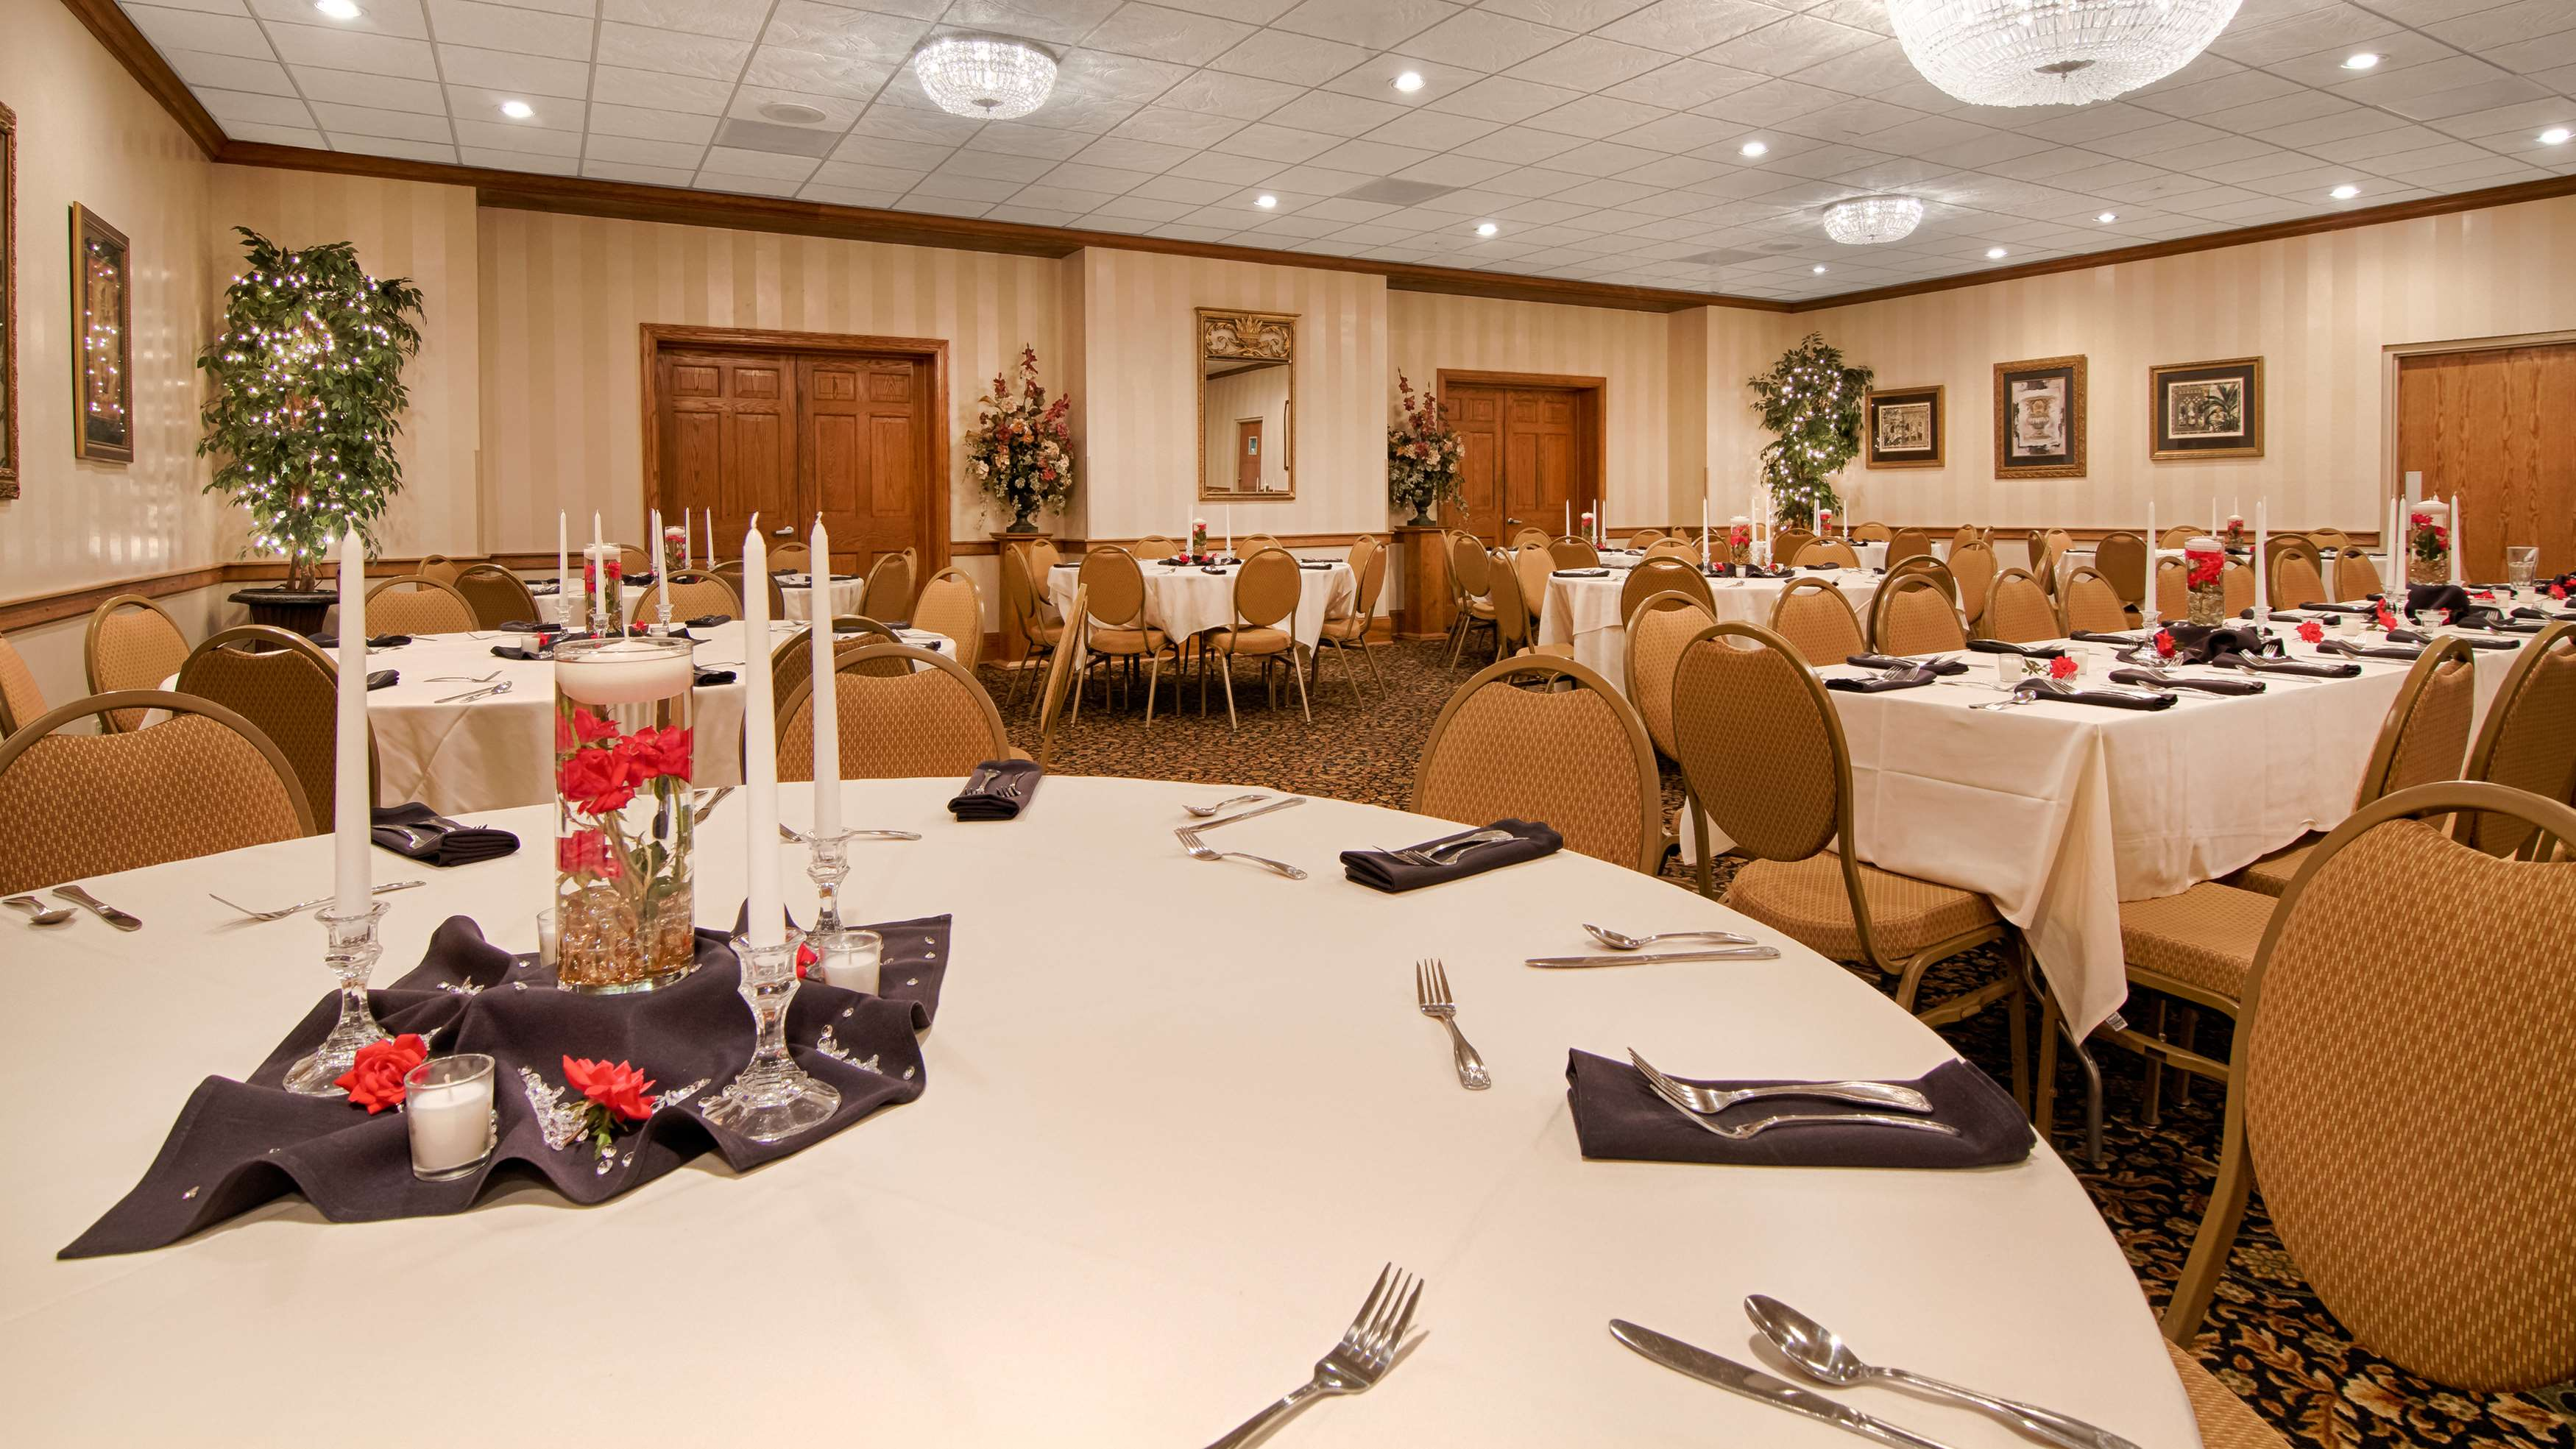 Best Western Plus Morristown Conference Center Hotel image 27